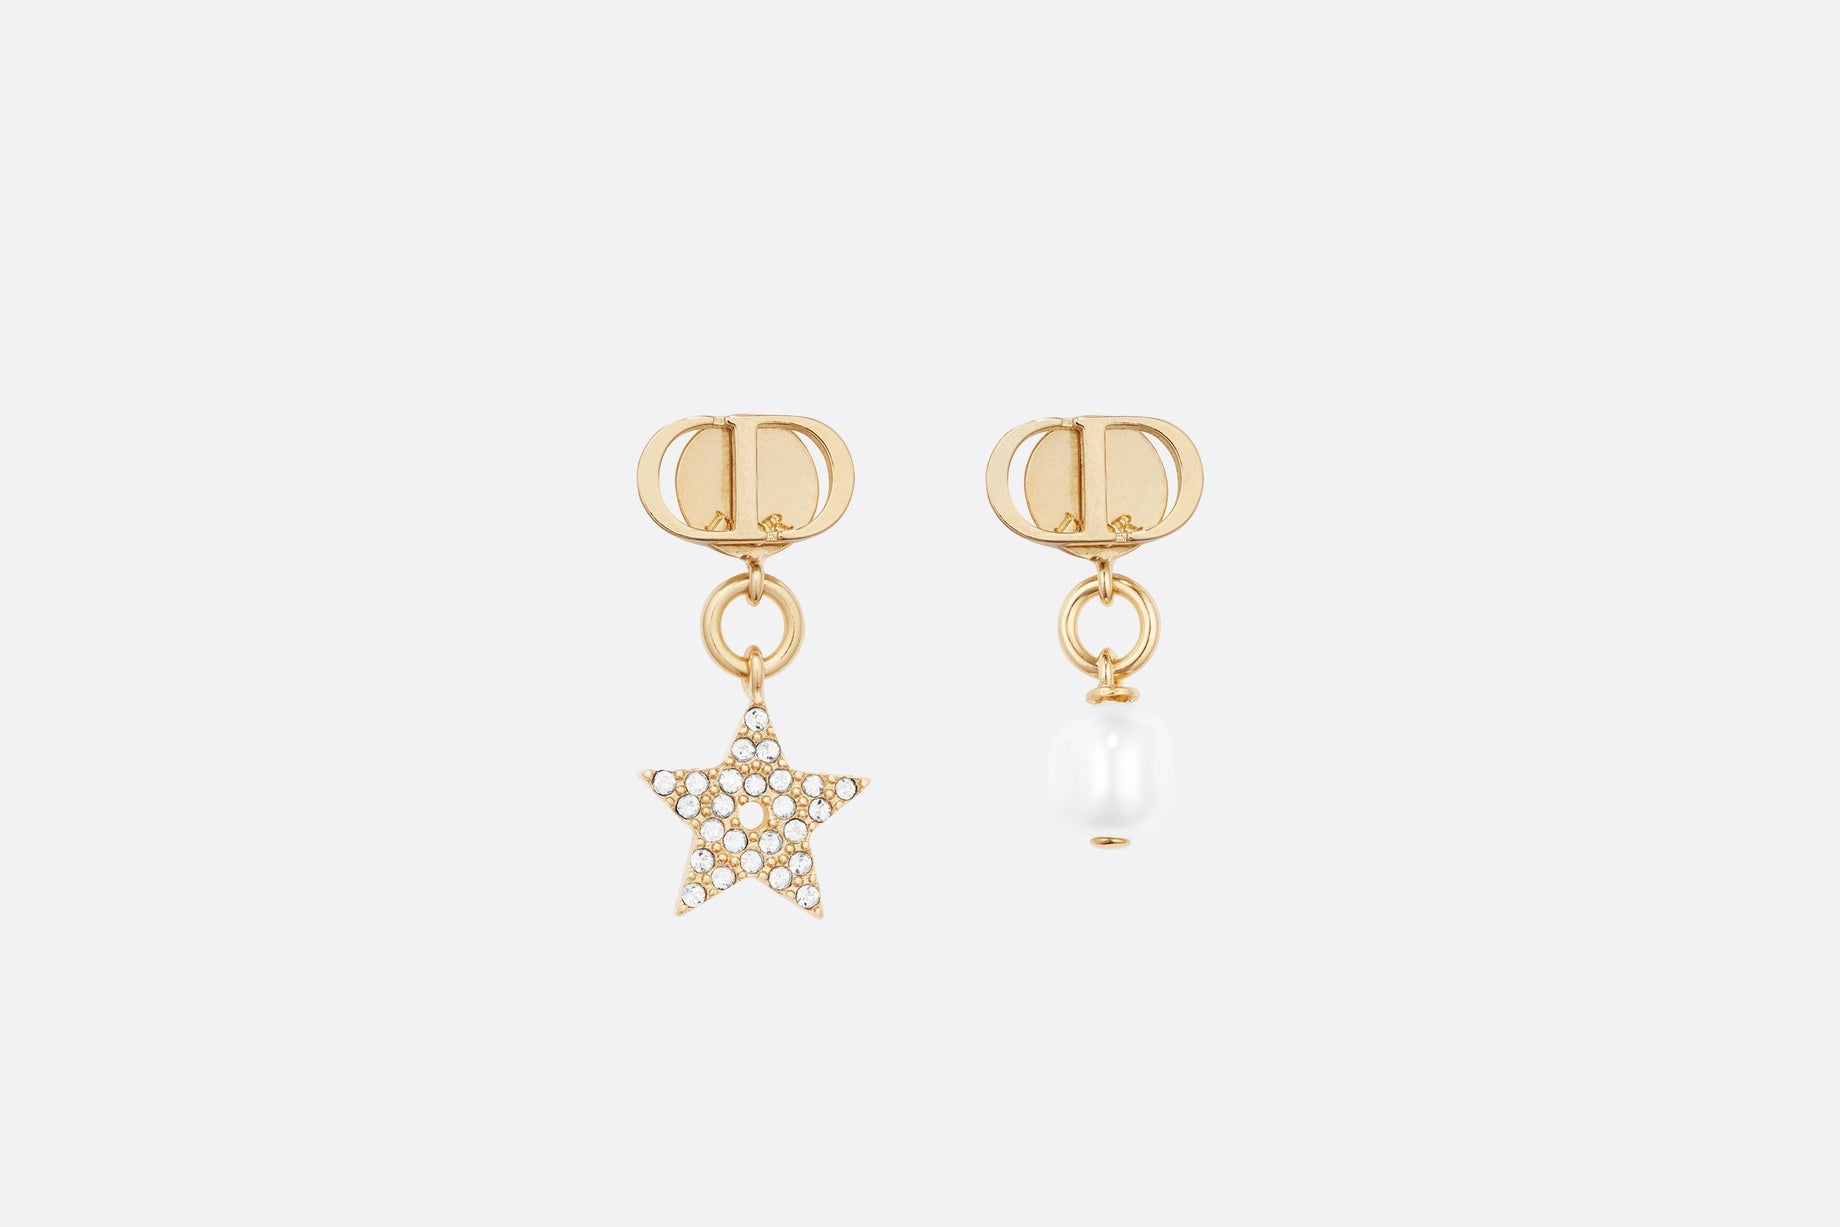 Petit CD Earrings • Gold-Finish Metal, White Crystals and White Glass Pearls